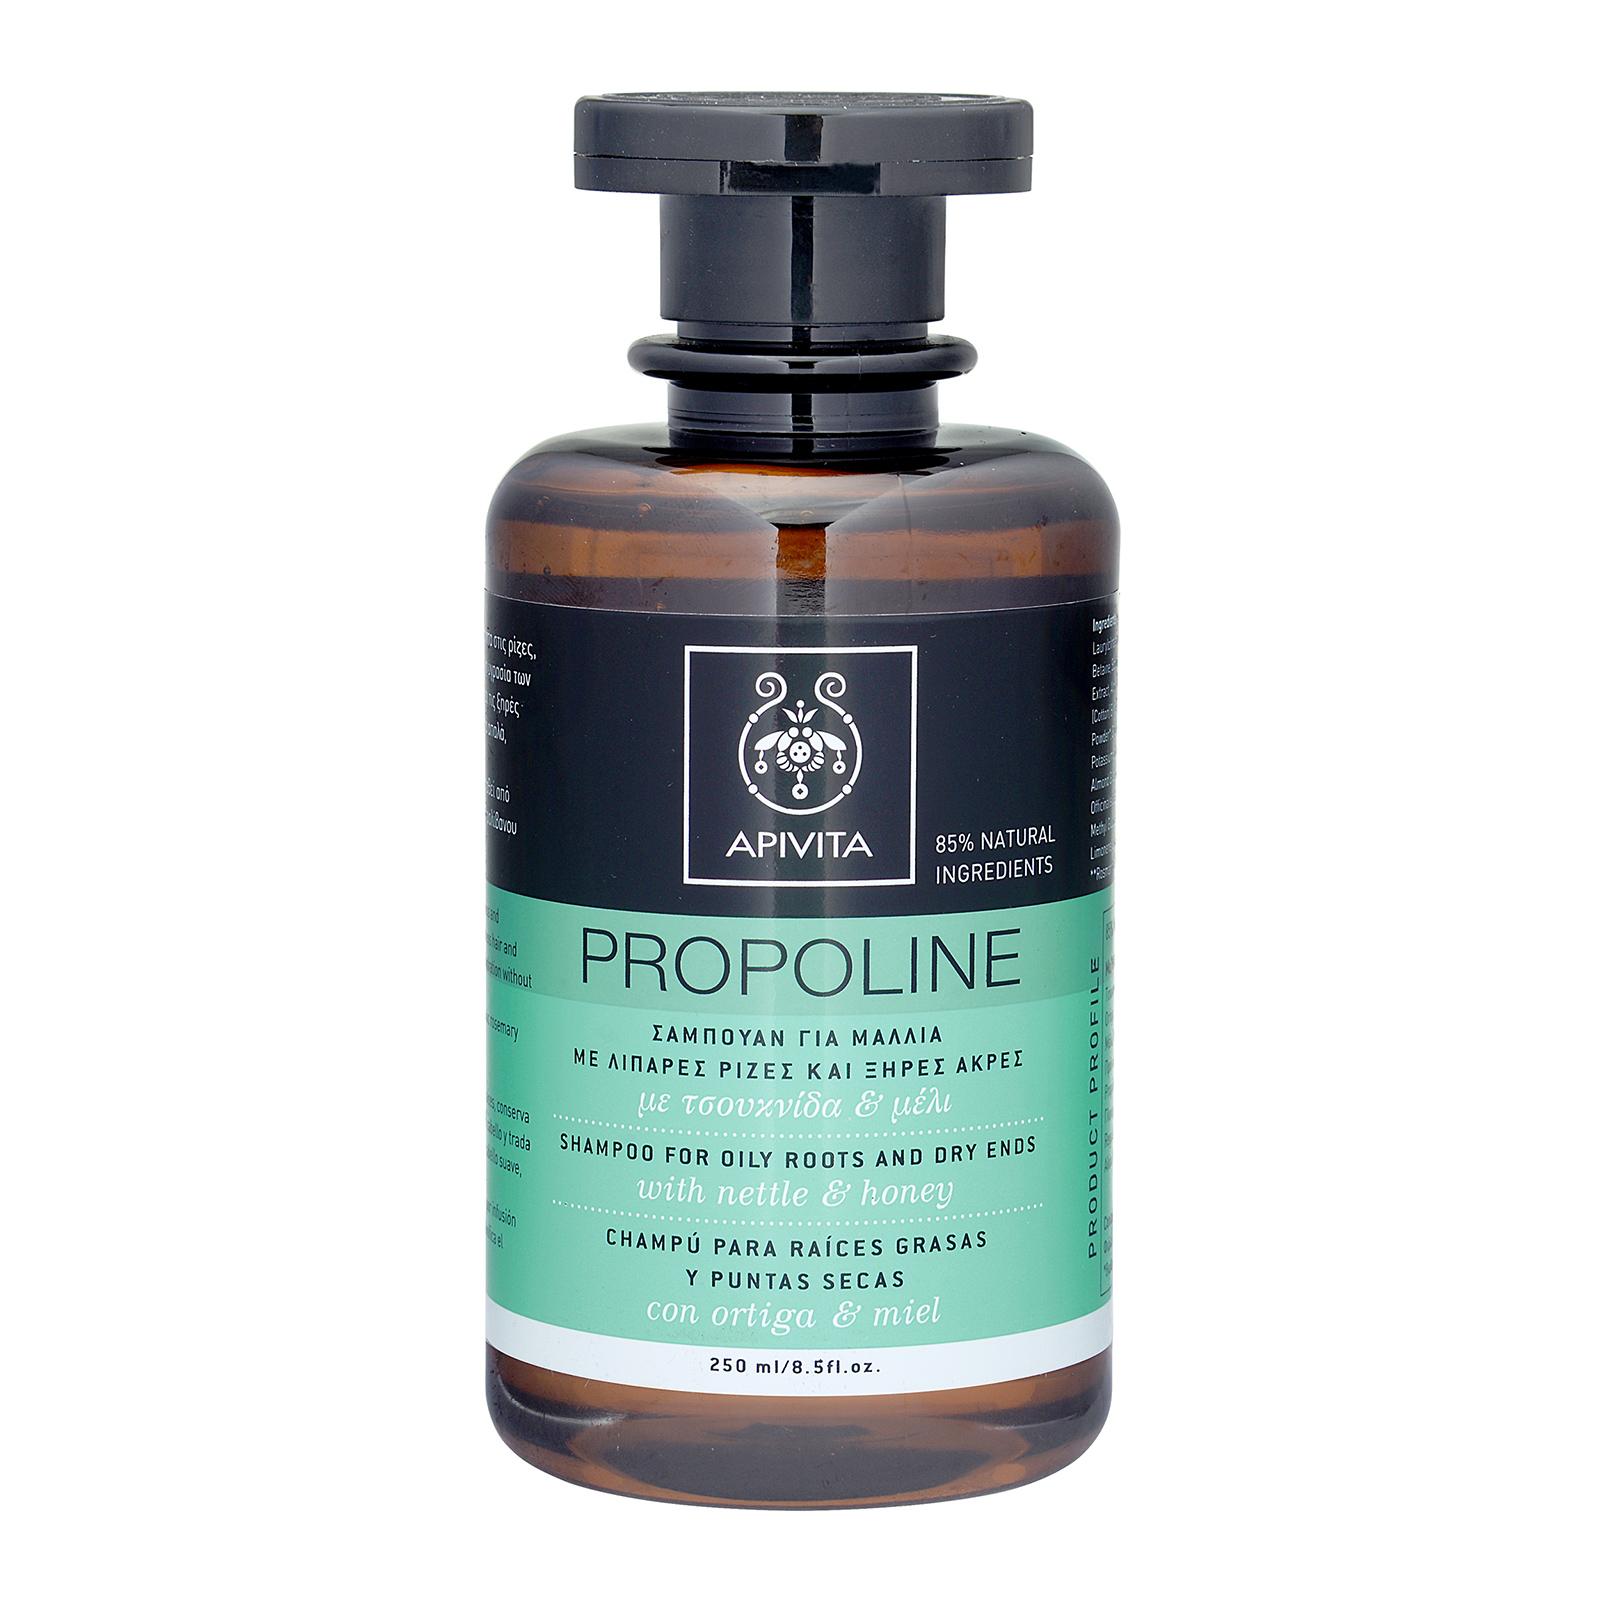 APIVITA Propoline Shampoo for Oily Roots and Dry Ends with Nettle & Honey 8.5oz, 250ml